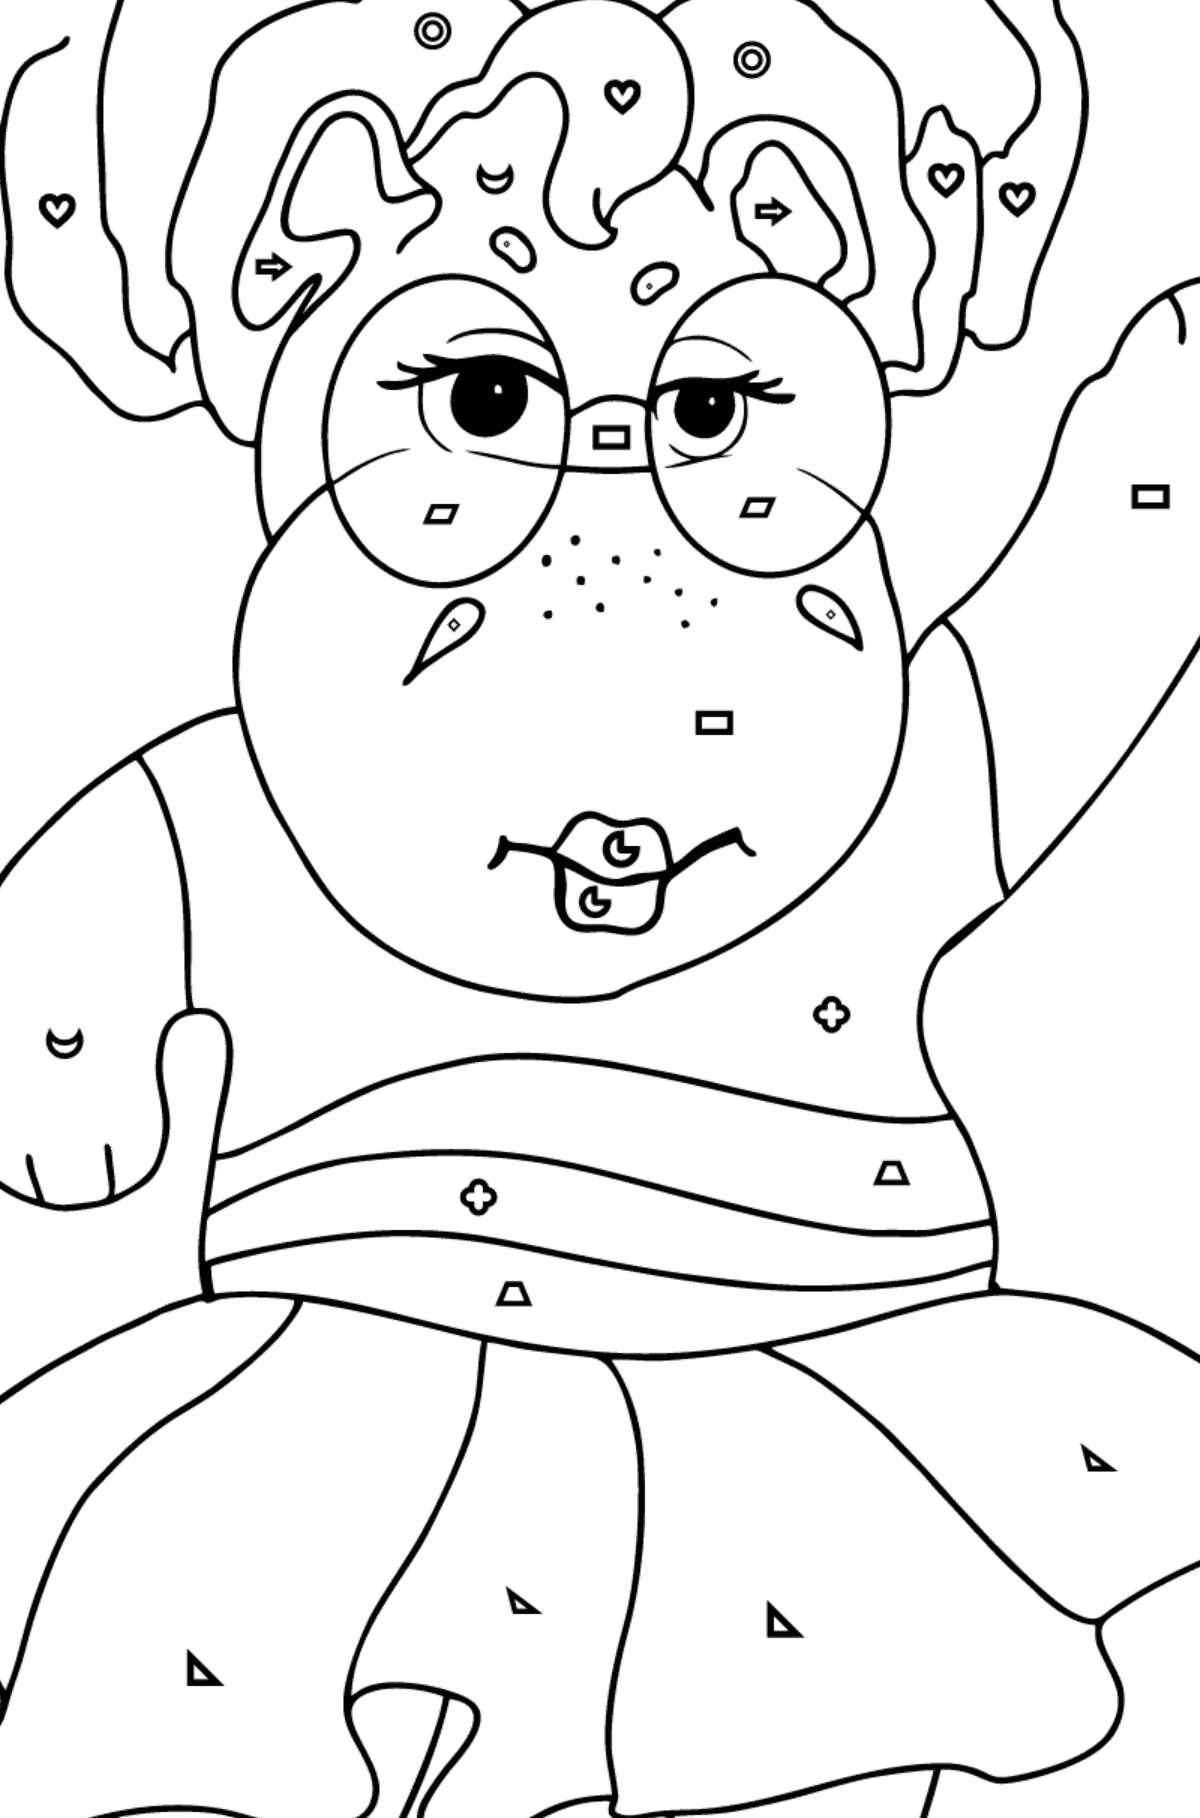 Coloring Page - A Hippo in Sunglasses for Children  - Color by Geometric Shapes